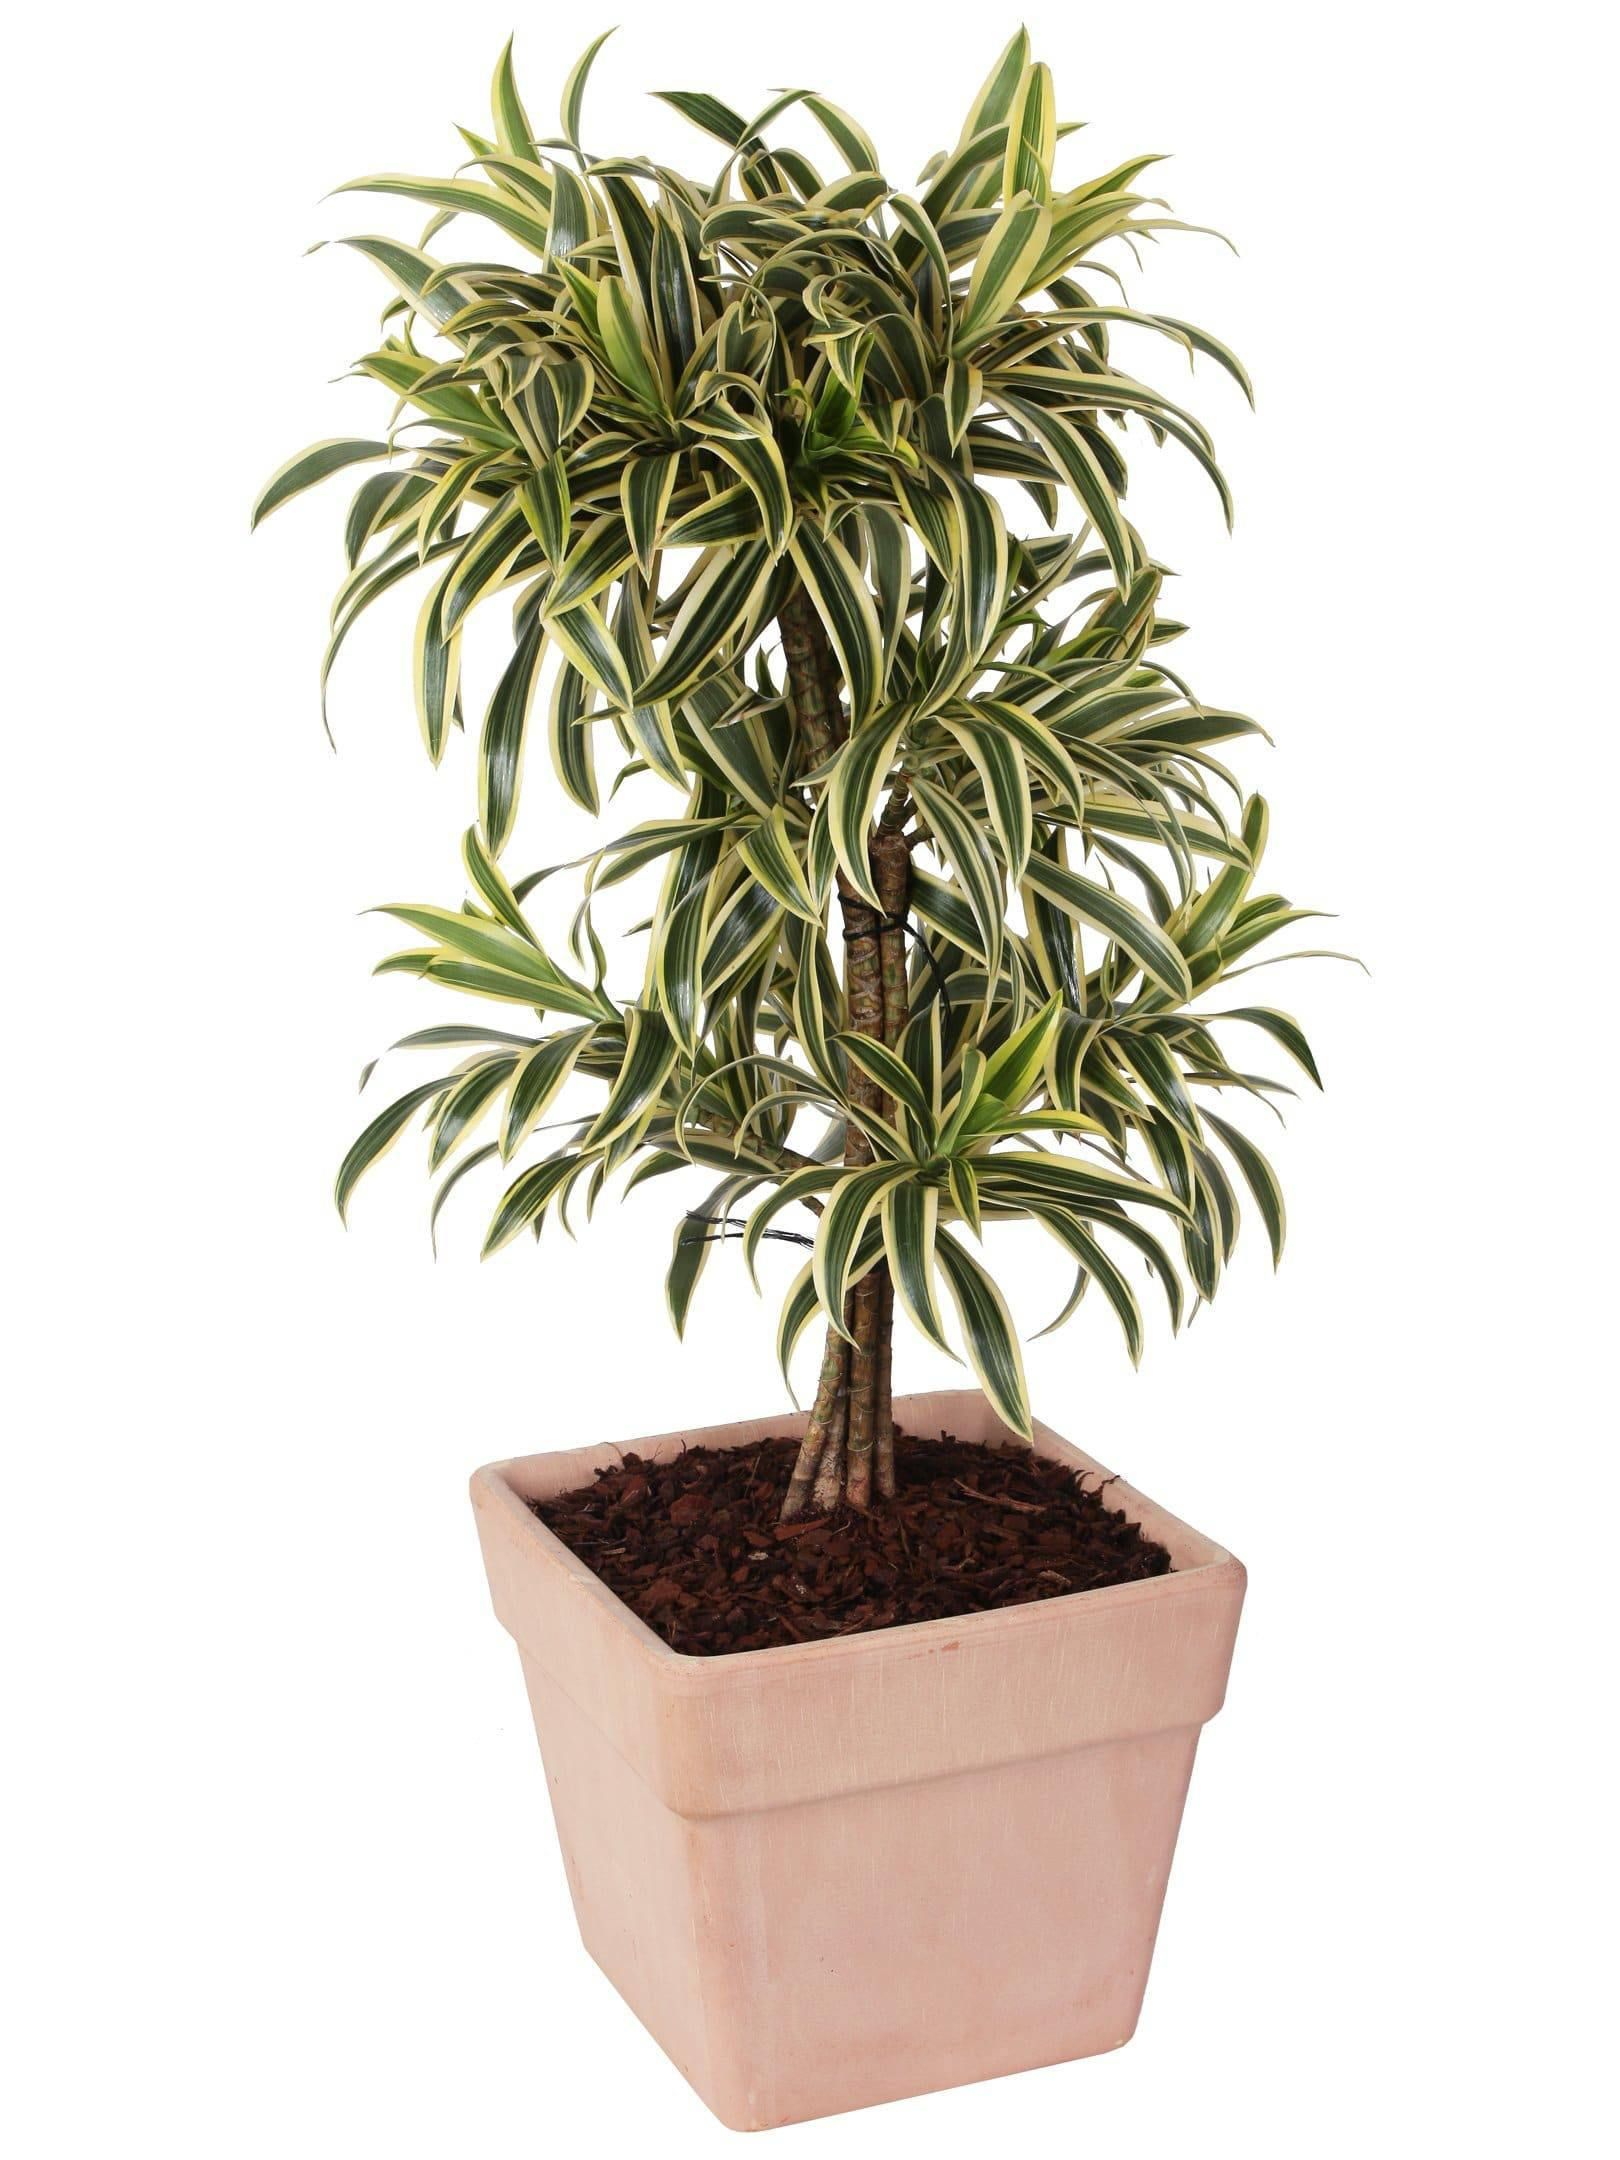 Dracaena Reflexa Pleomele Song of India en pot en terre cuite hauteur 95/100 cm. - Casita Hermosa